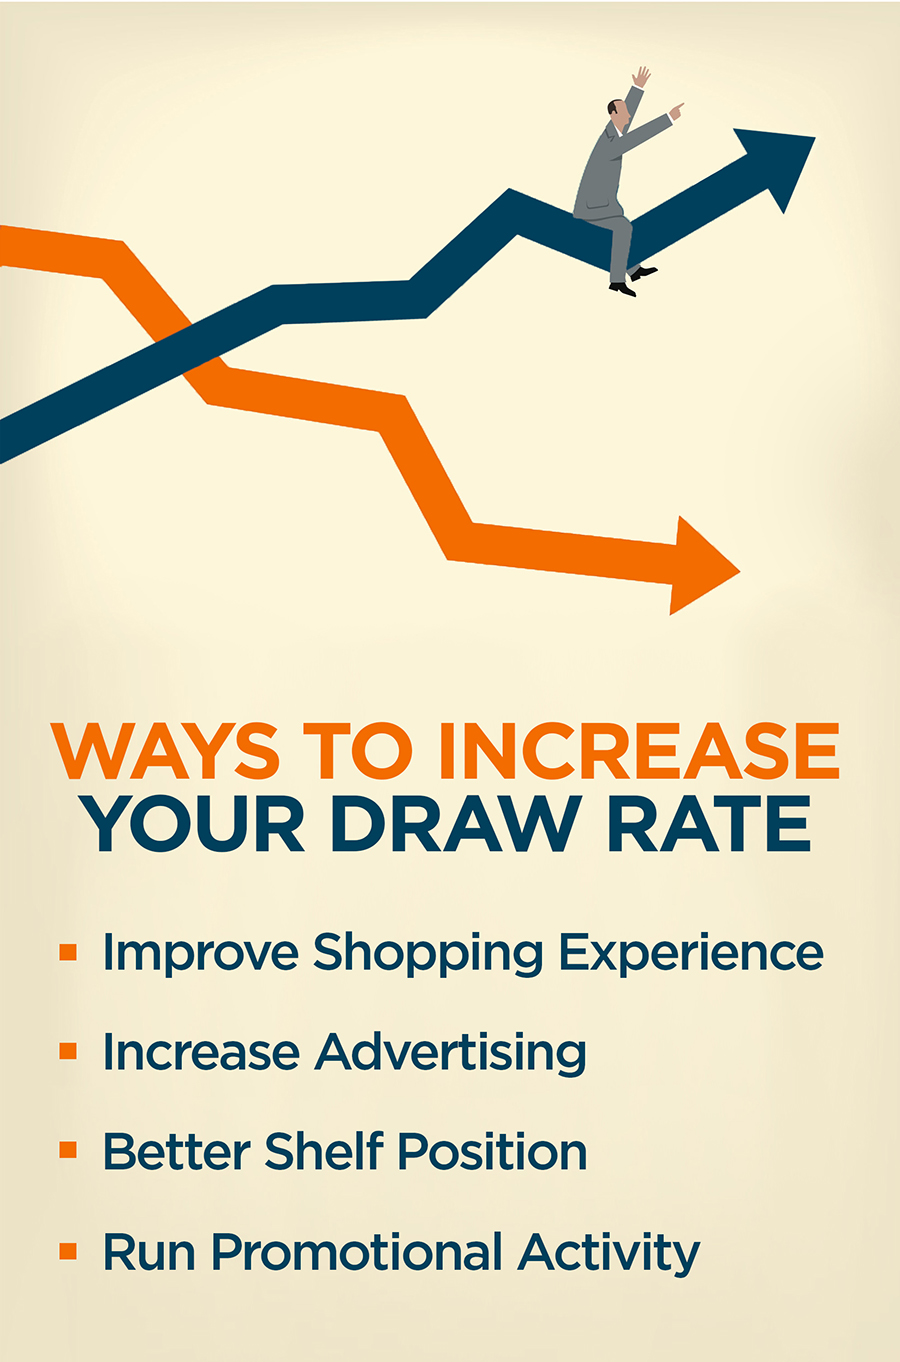 Ways to increase your draw rate: -improve shopping experience. -increase advertising. -better shelf position. -run promotional activity